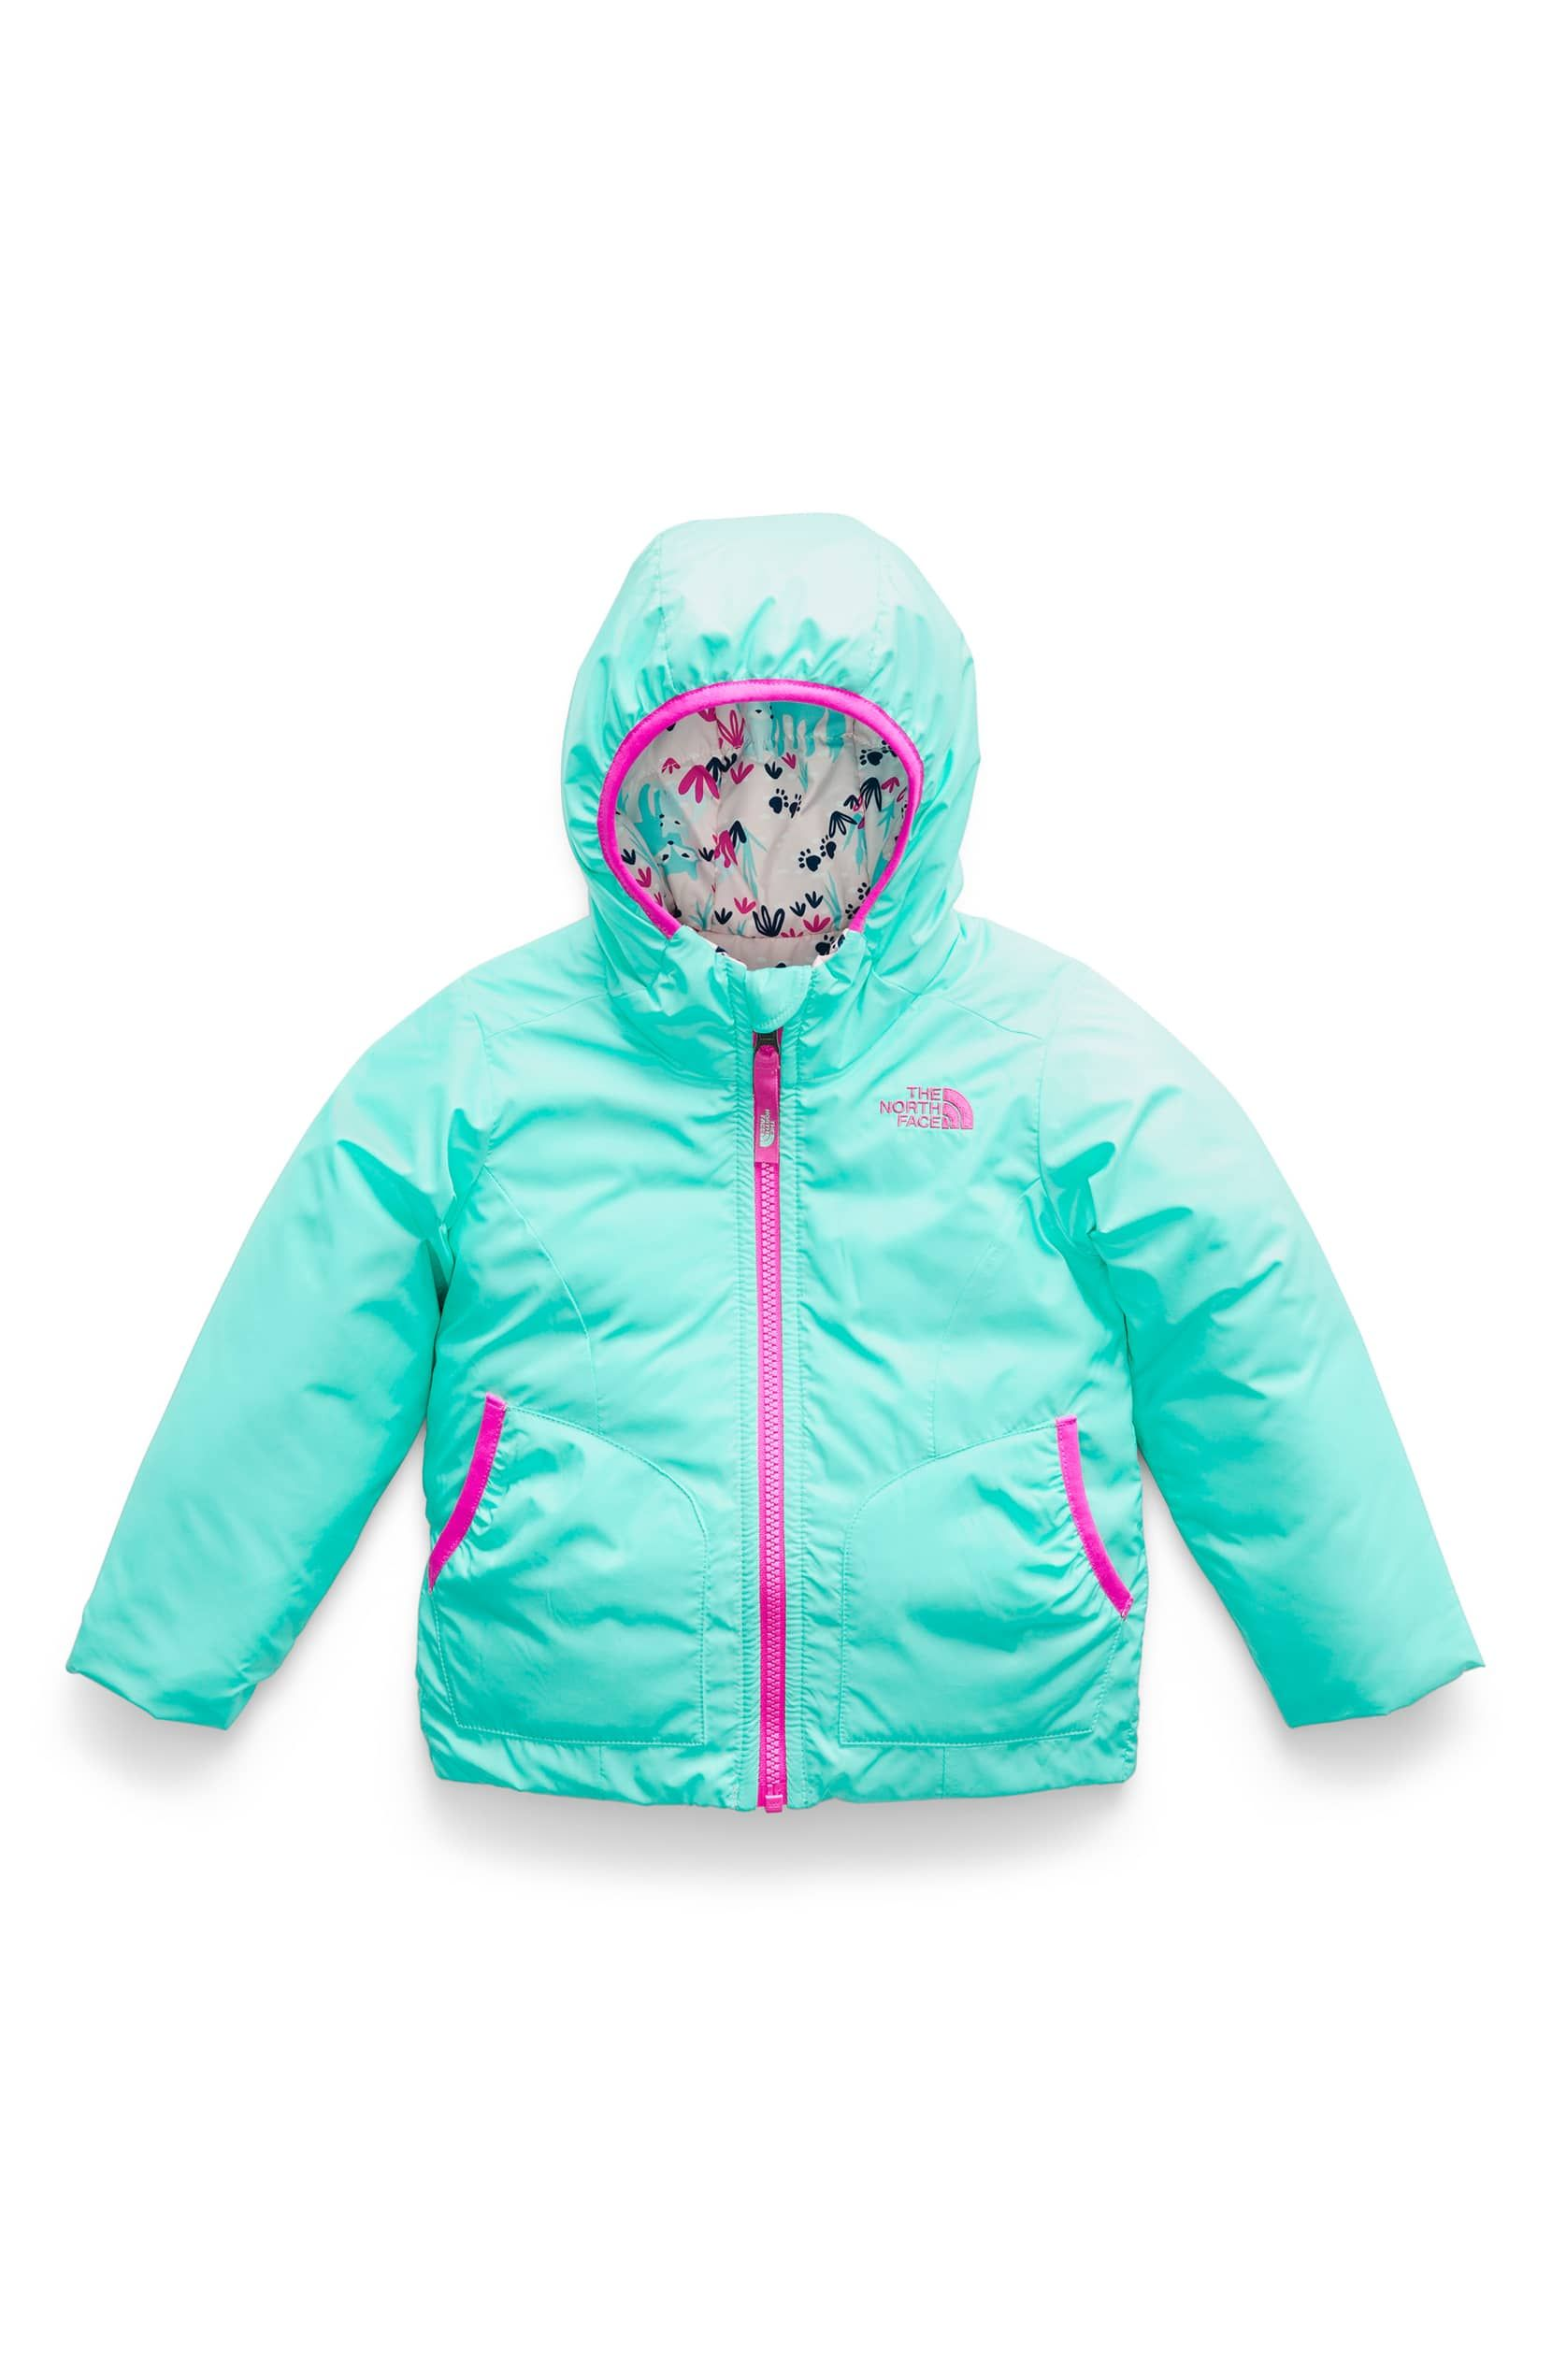 The North Face Kids Reversible Perrito Jacket Is A Quilted Jacket Designed With A Dwr Durable Water Repellent Warm Winter Jackets Toddler Girl The North Face [ 2546 x 1660 Pixel ]